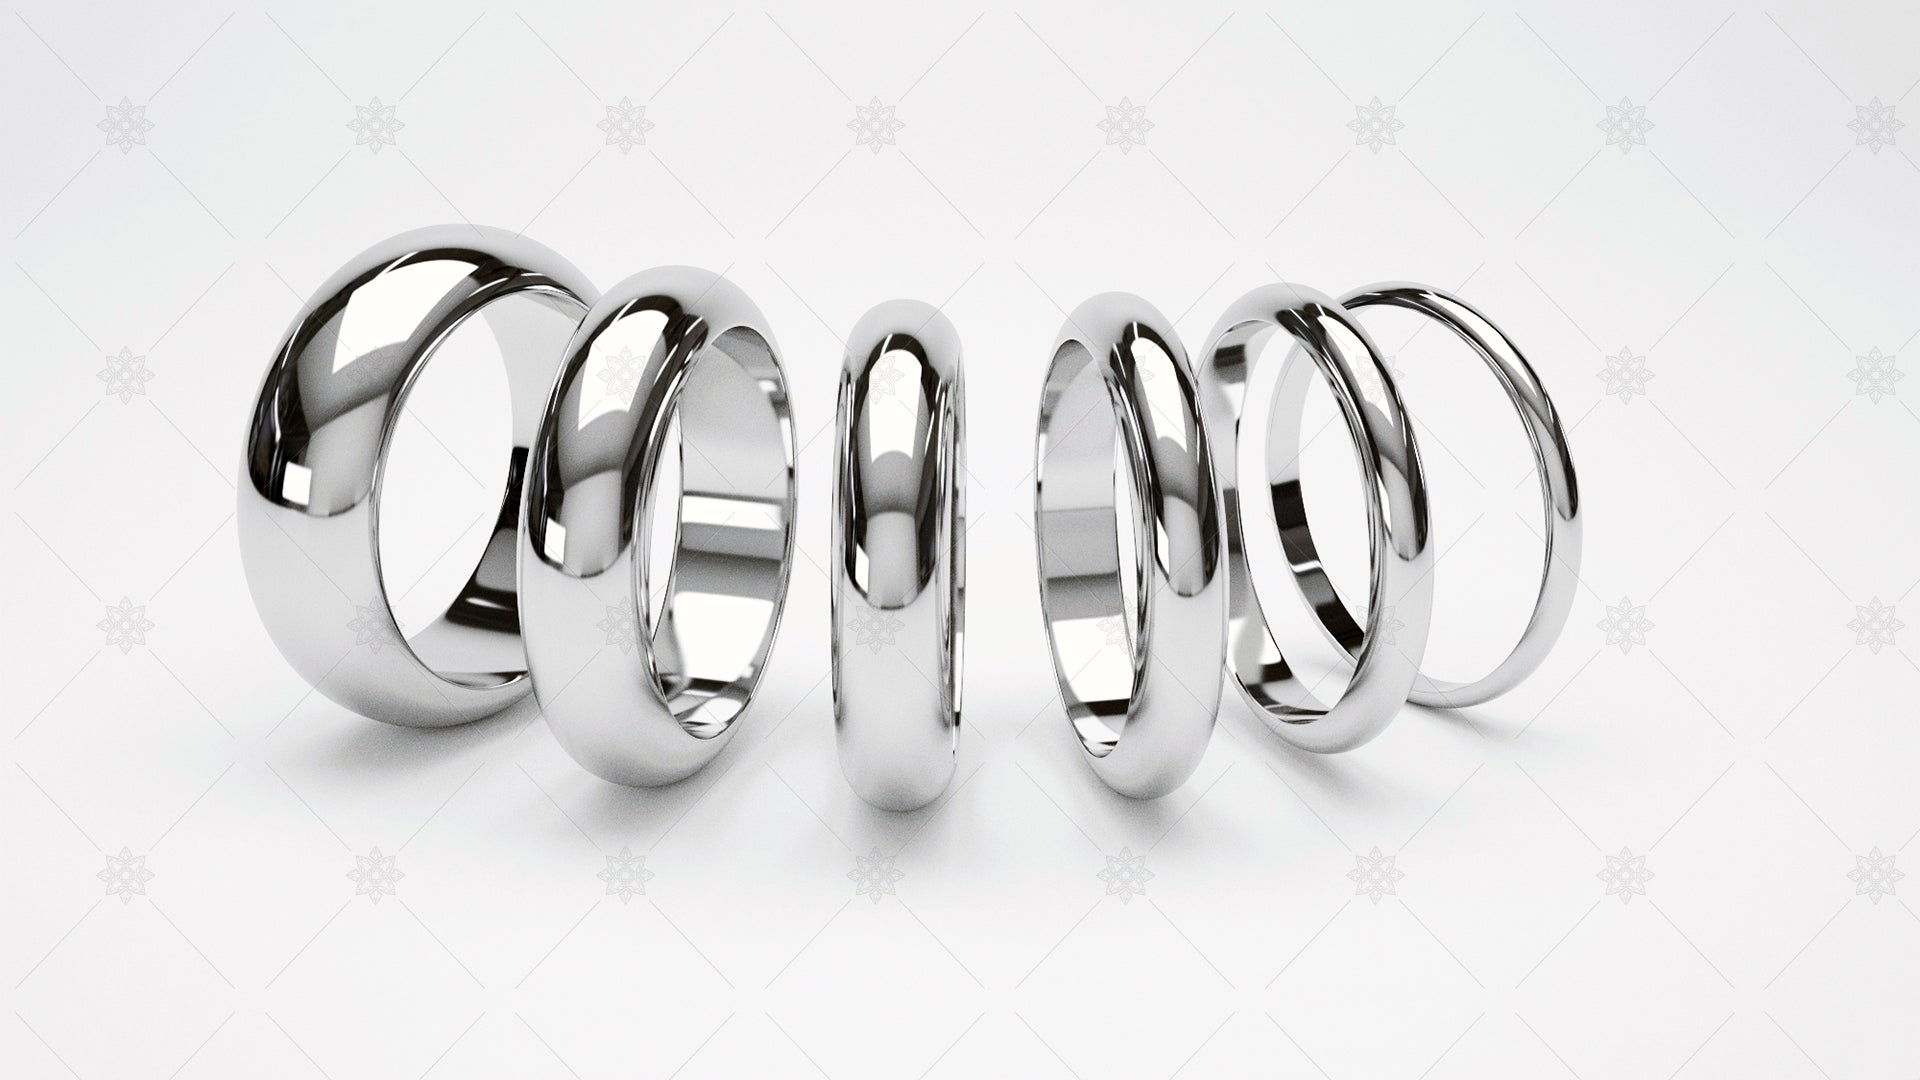 plain wedding ring website banner design